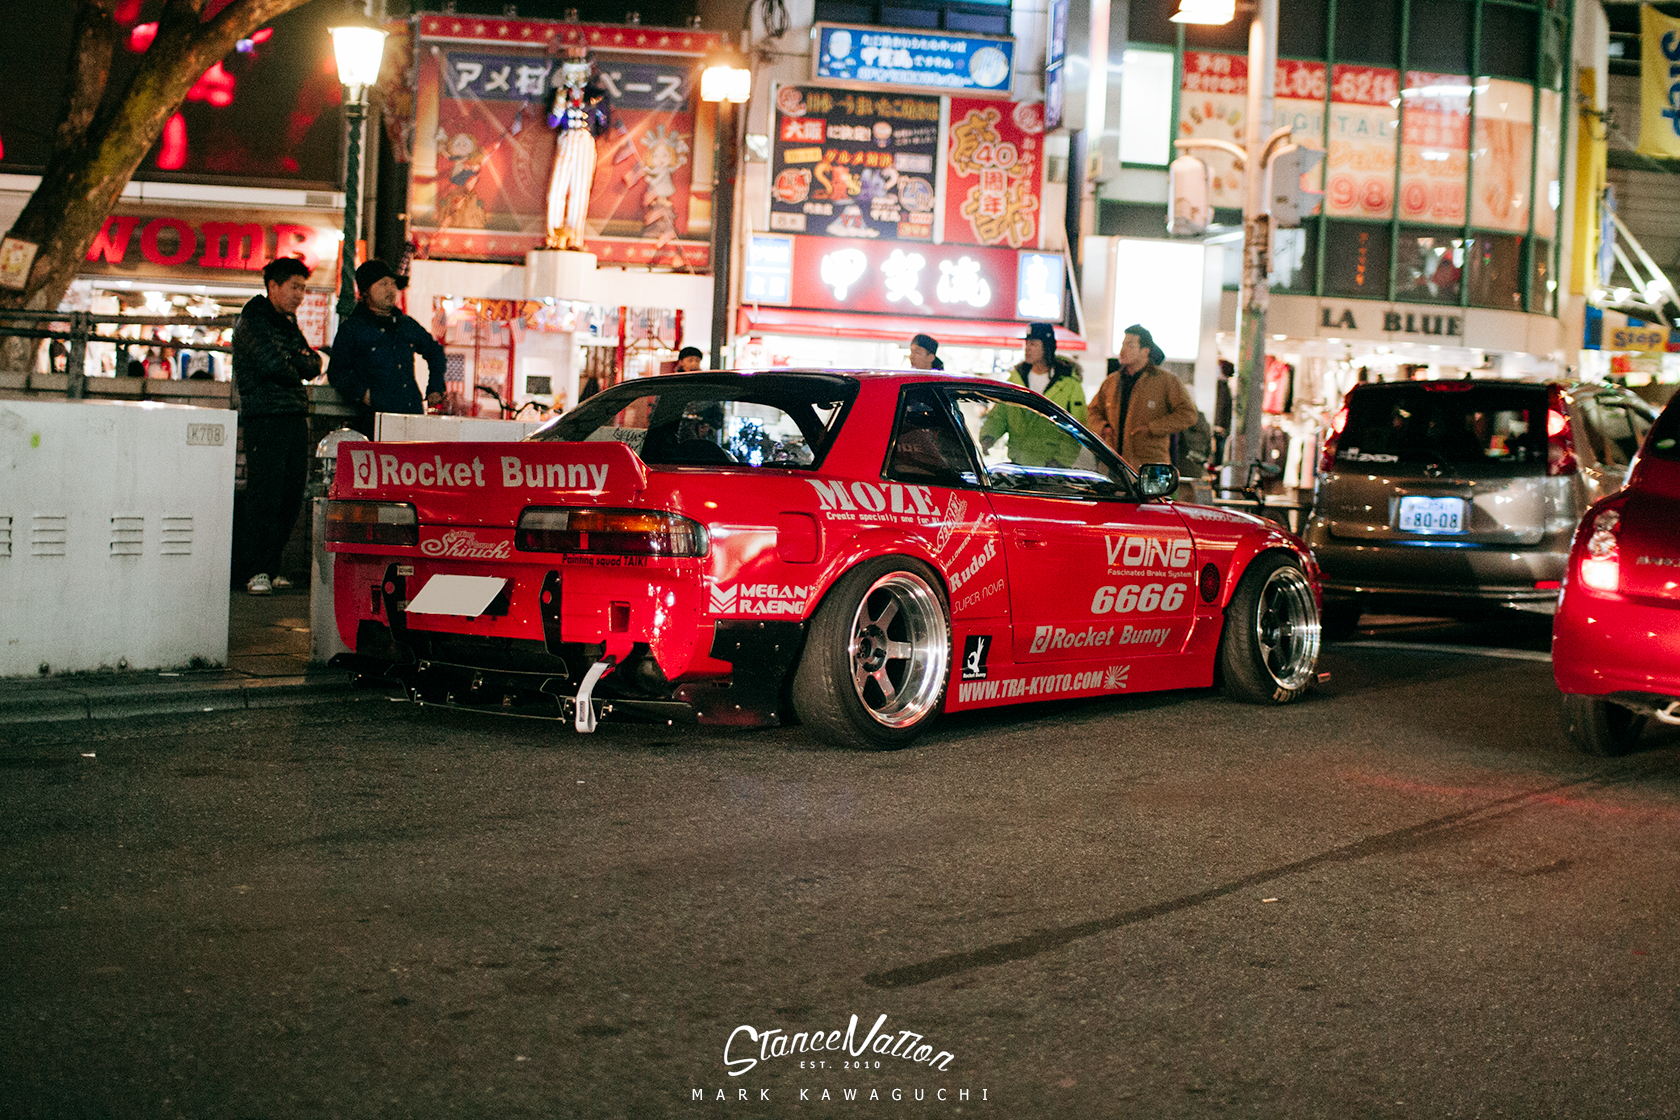 Timeless Beauty Takashis Nissan Silvia S13 Stancenation Chassis Wiring Diagram Rocket Bunny Japan 6666 Customs 21